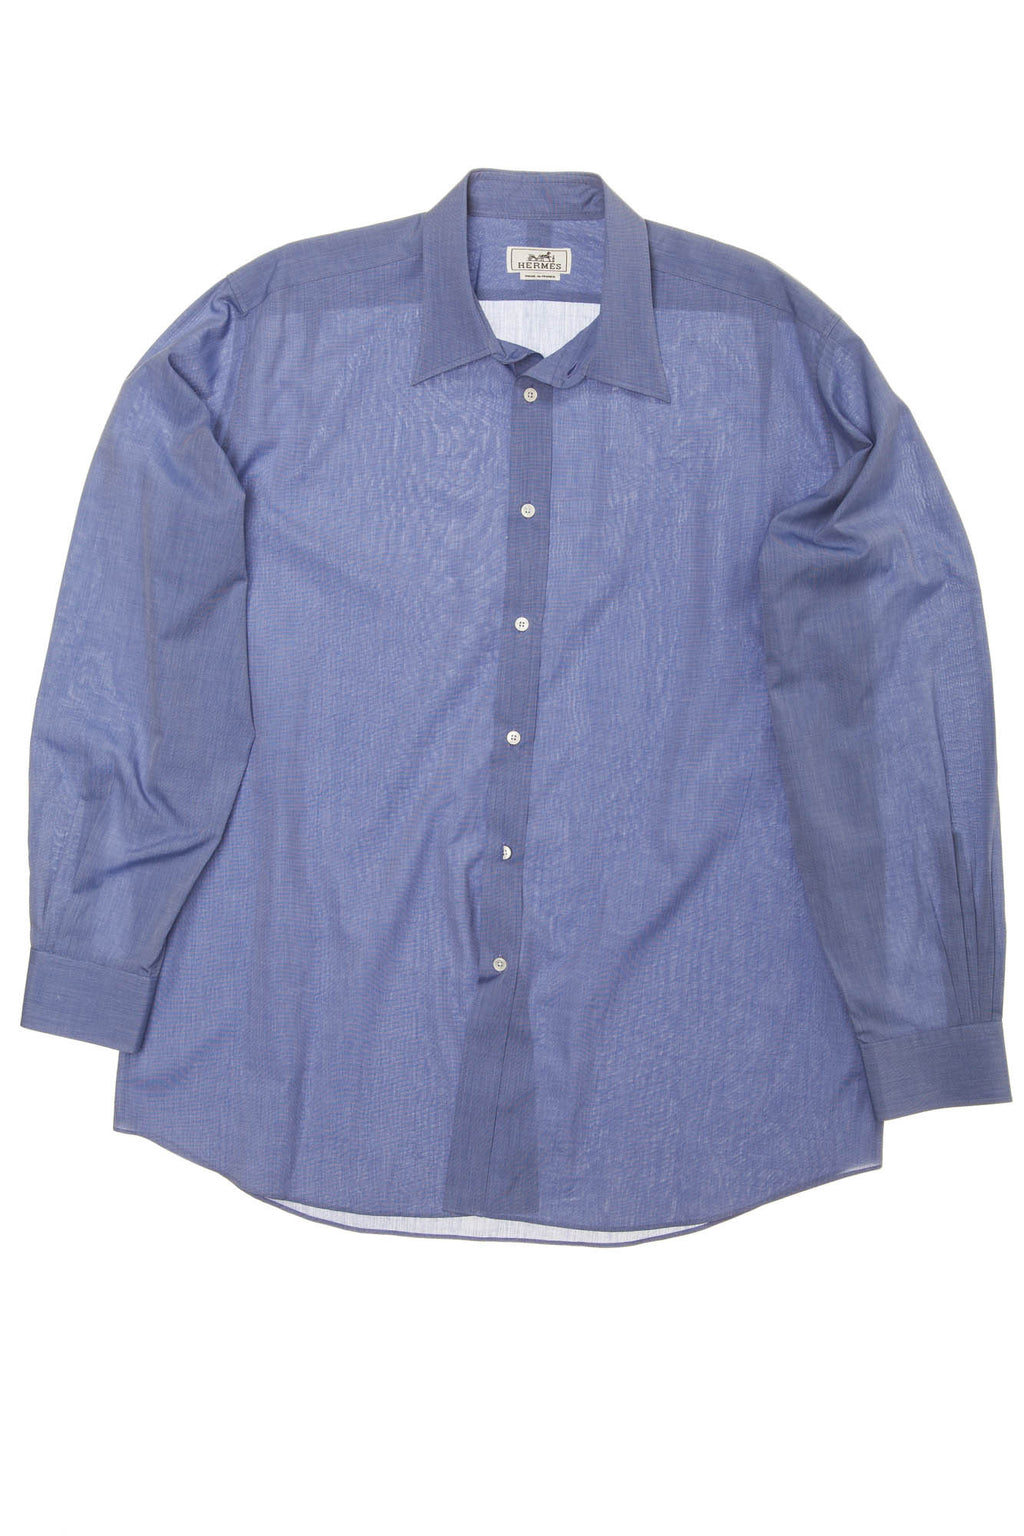 Hermes - Blue Men's Dress Shirt - IT 40